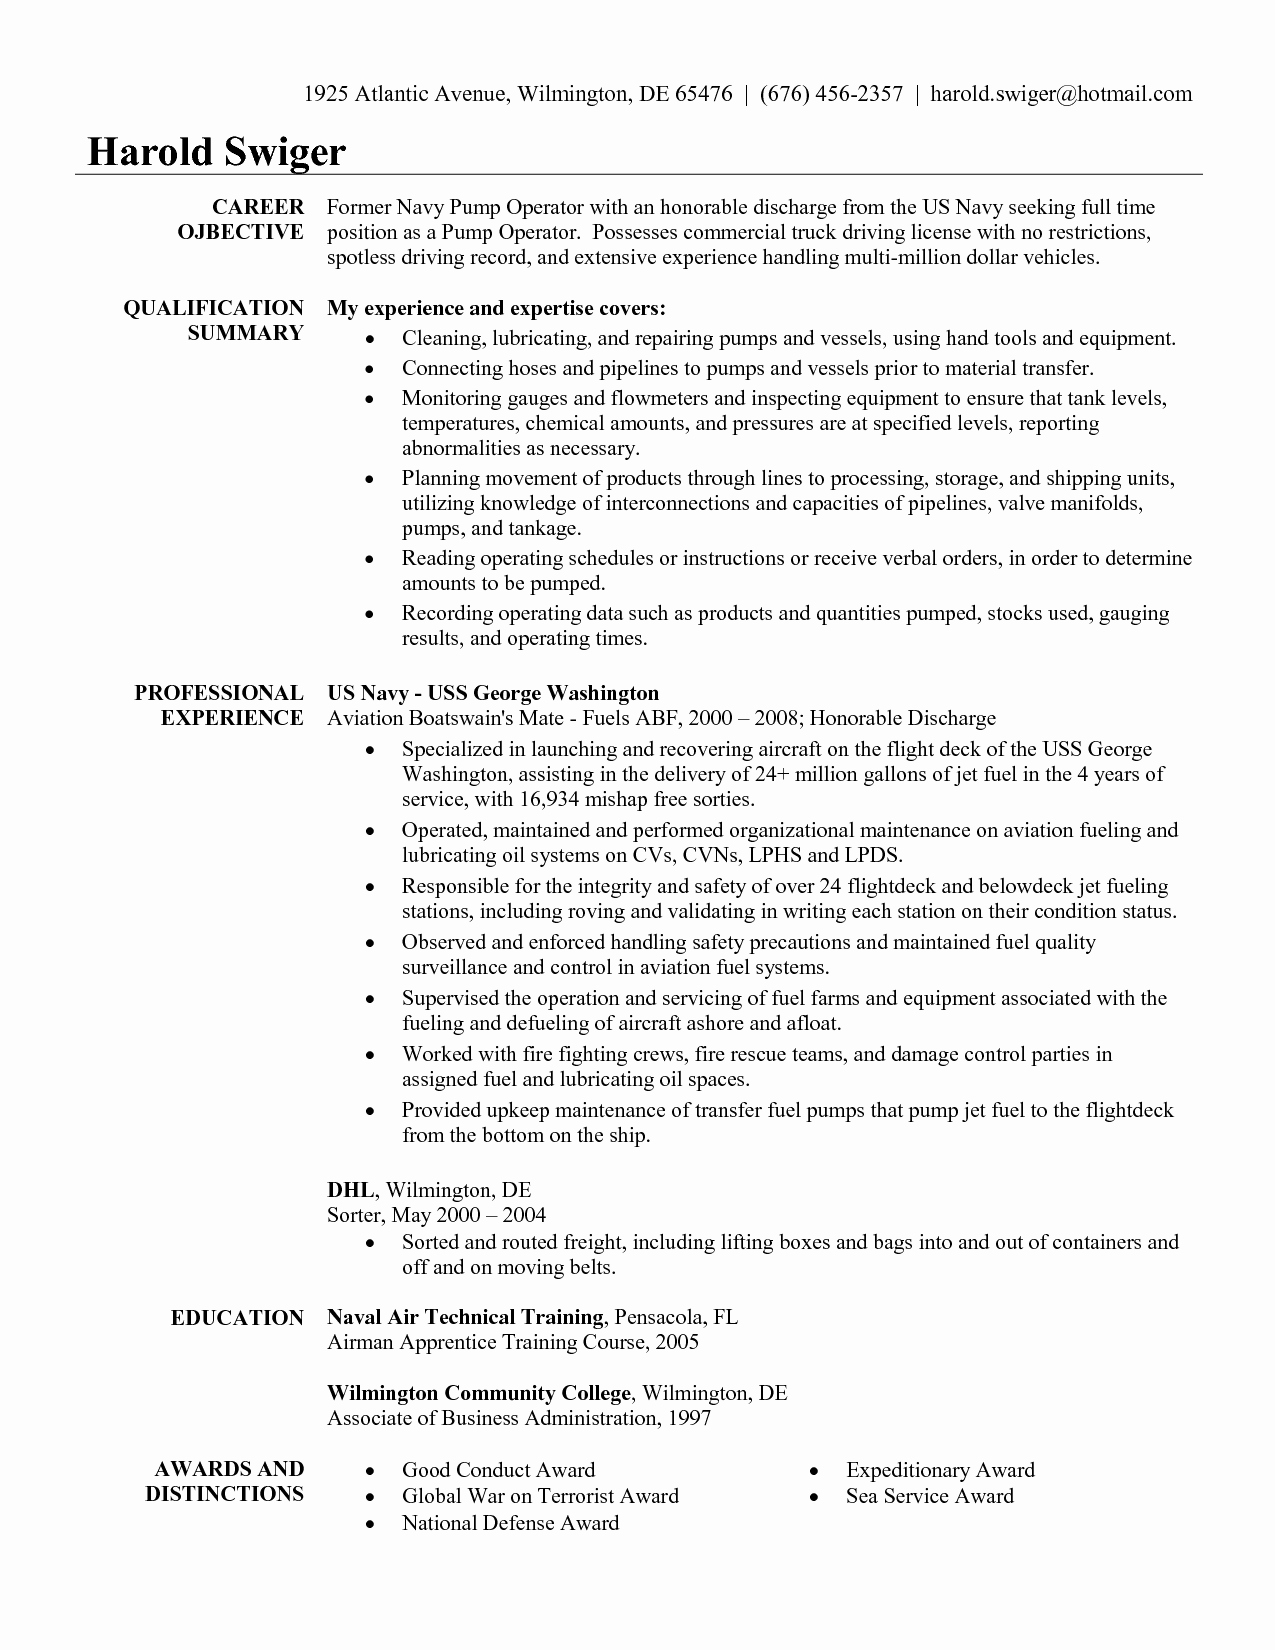 Military Experience Resume